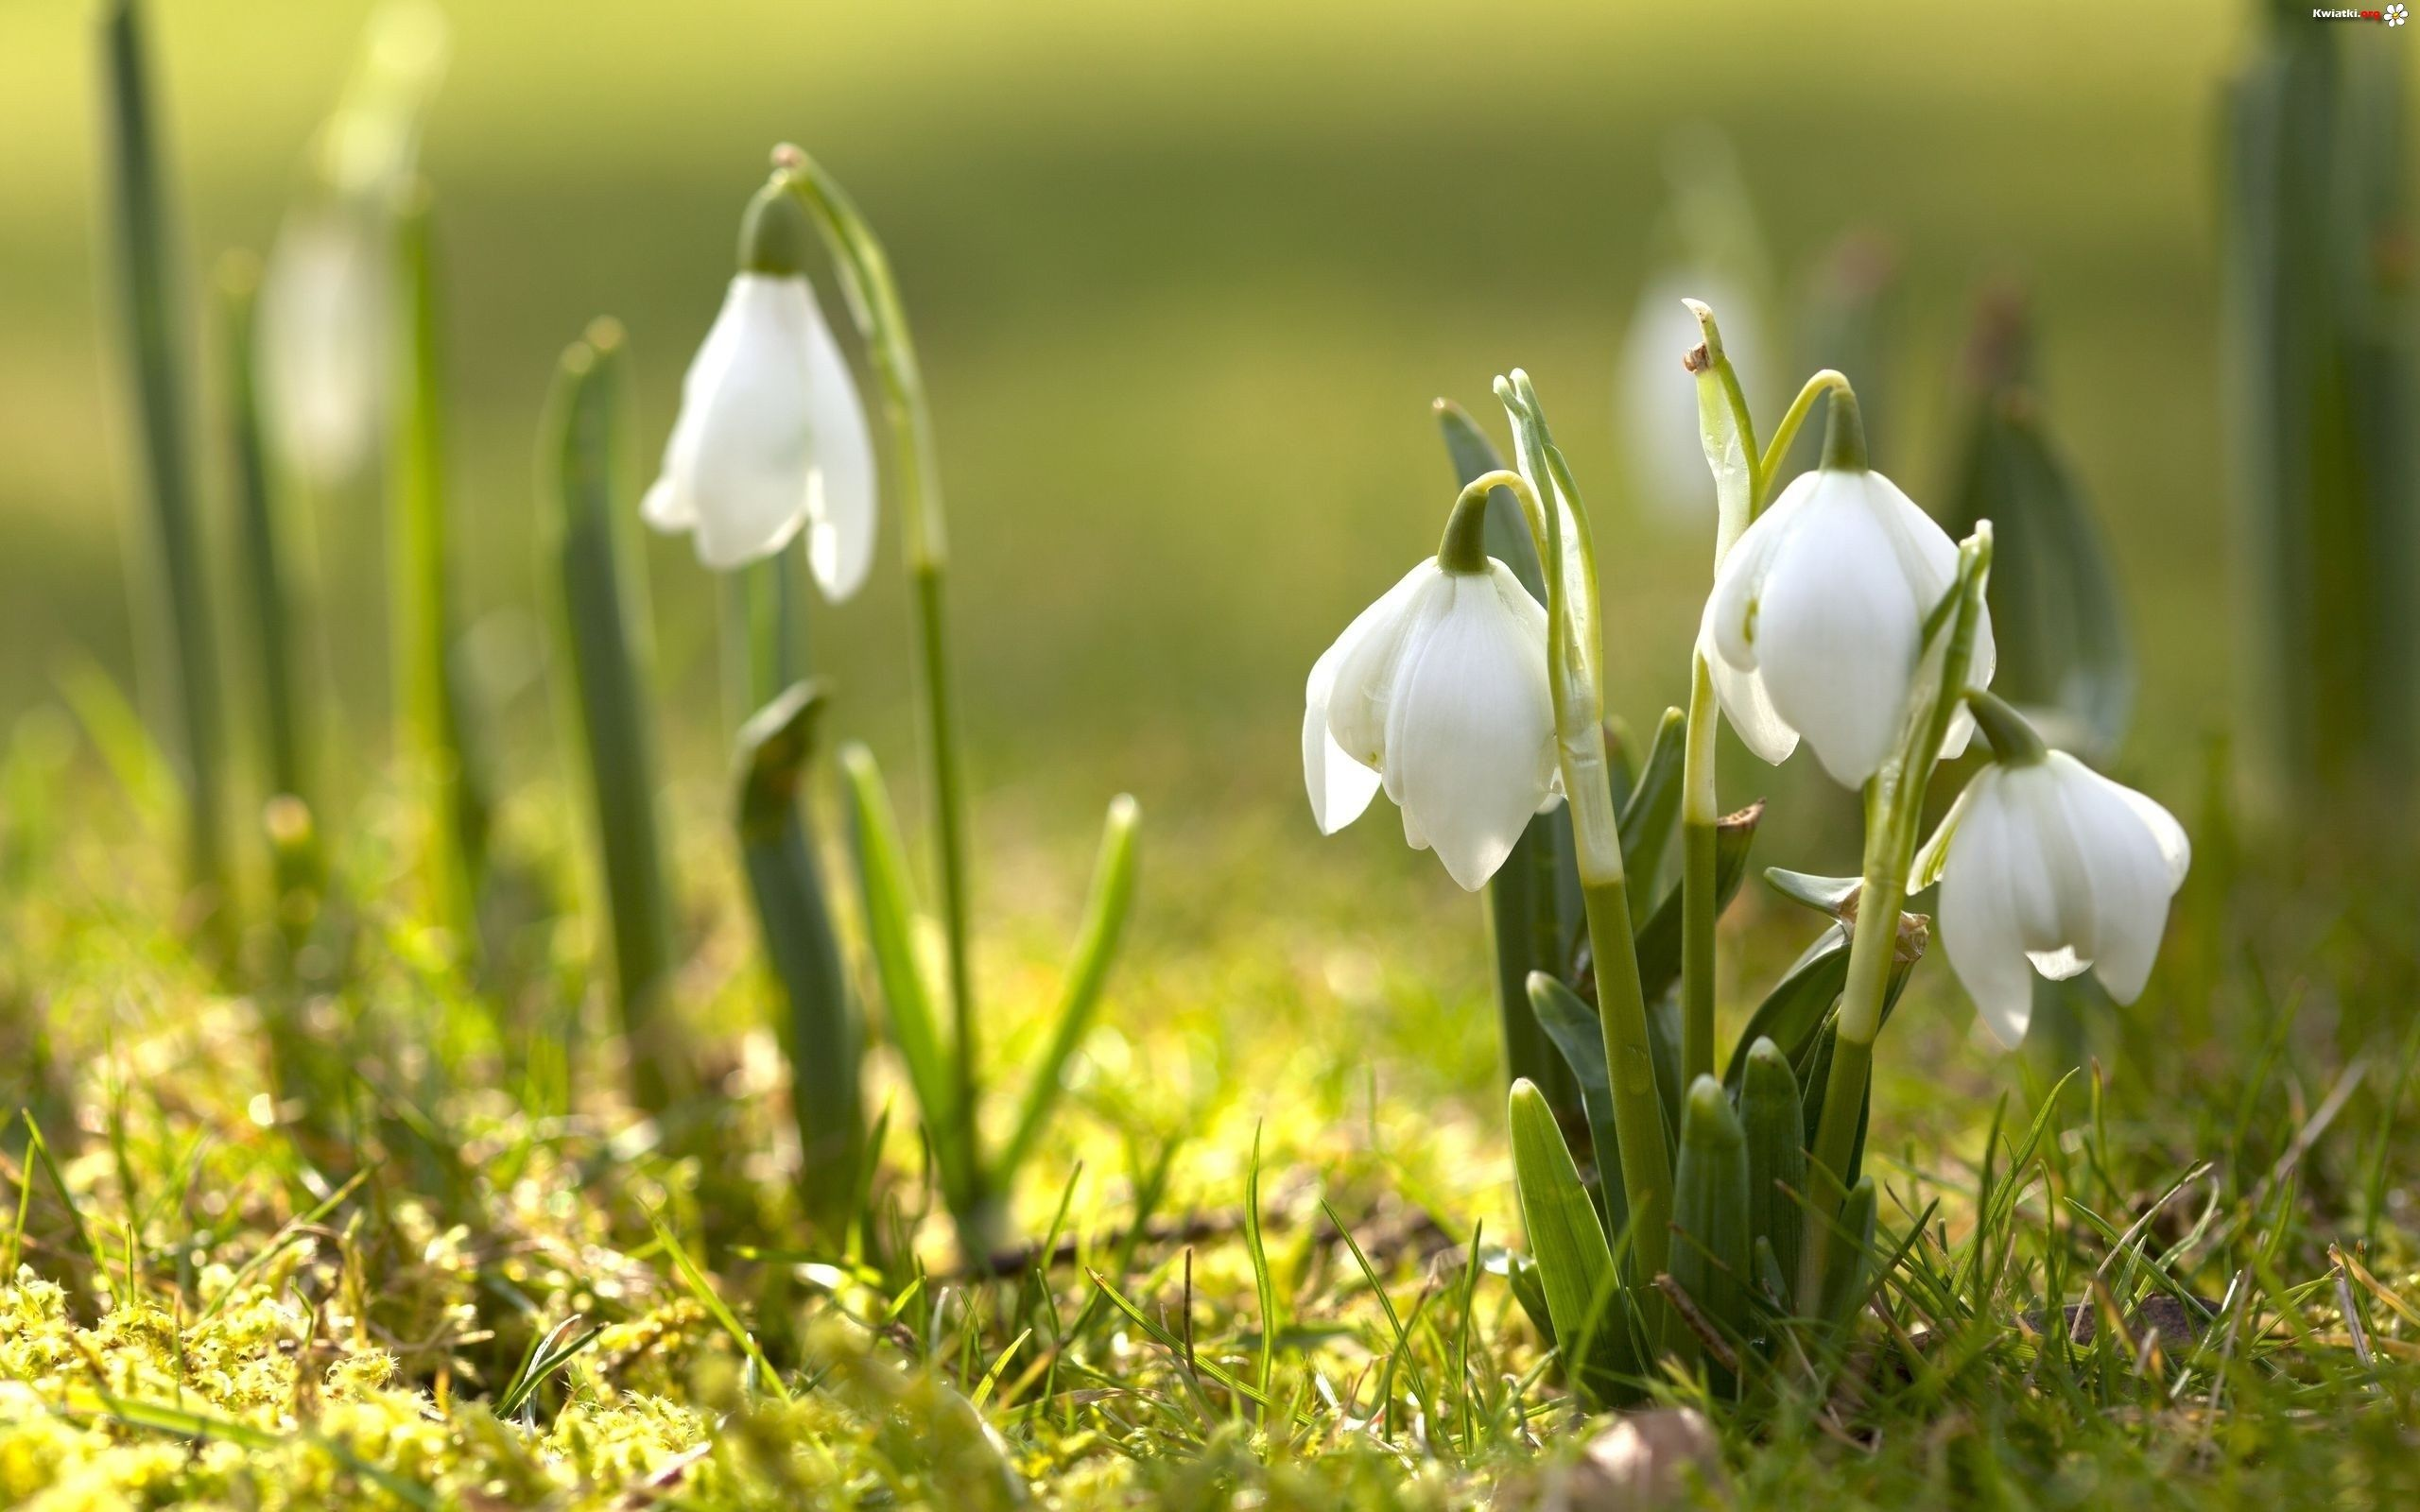 Snowdrops Early Spring Flowers Spring Flowers Wallpaper Spring Flowers